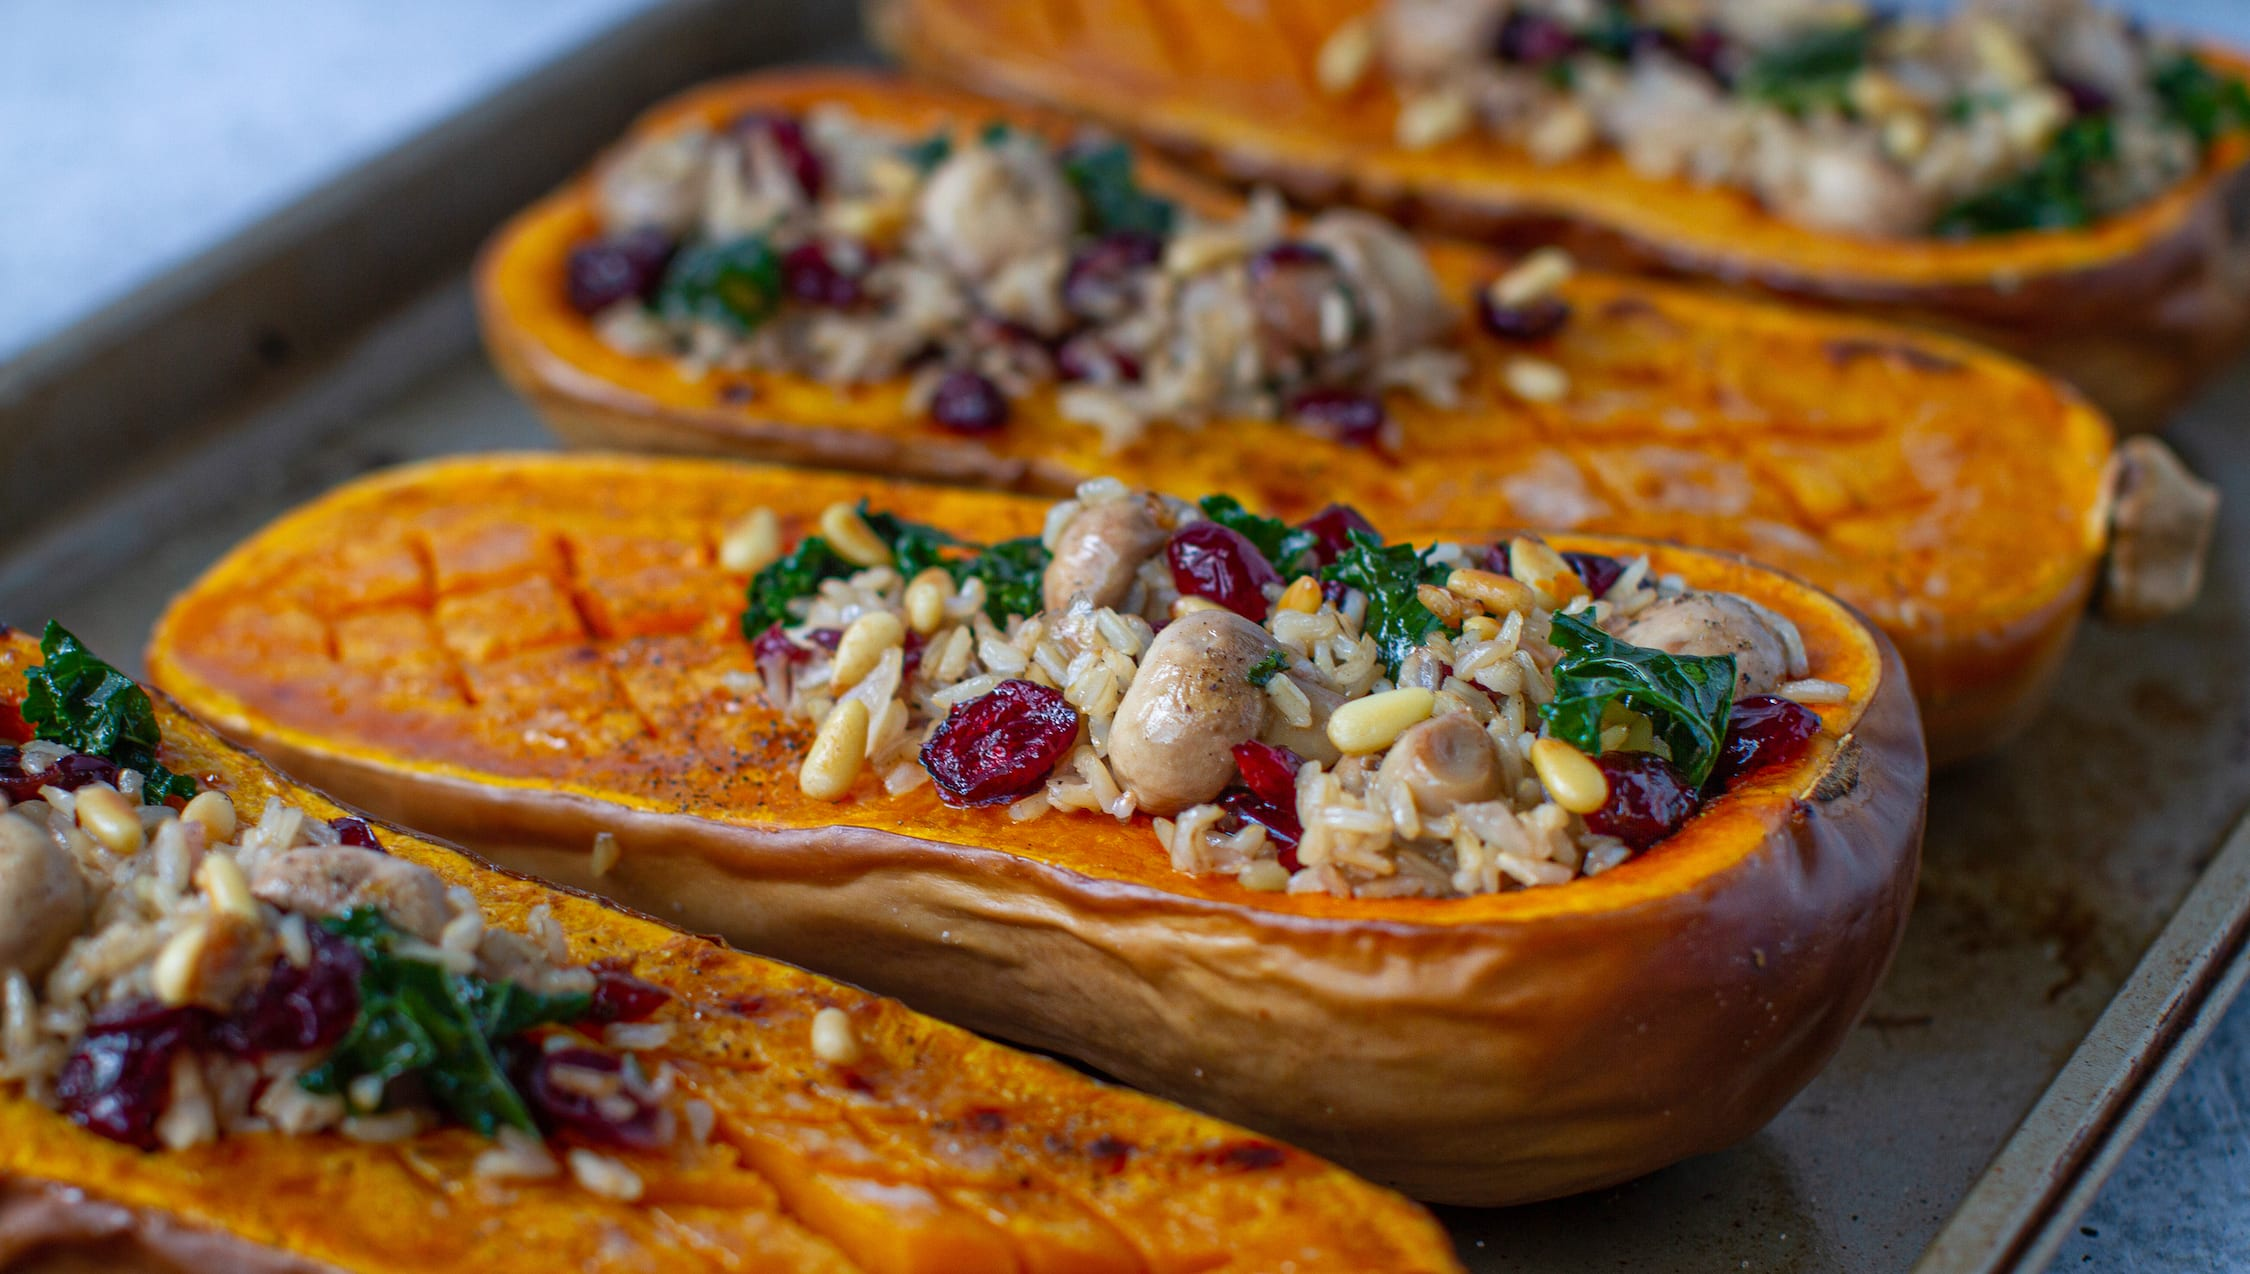 Large, orange roasted butternut squash halves are stuffed with a tasty brown rice, mushroom, cranberry and kale medley make for a perfect vegan fall entree.